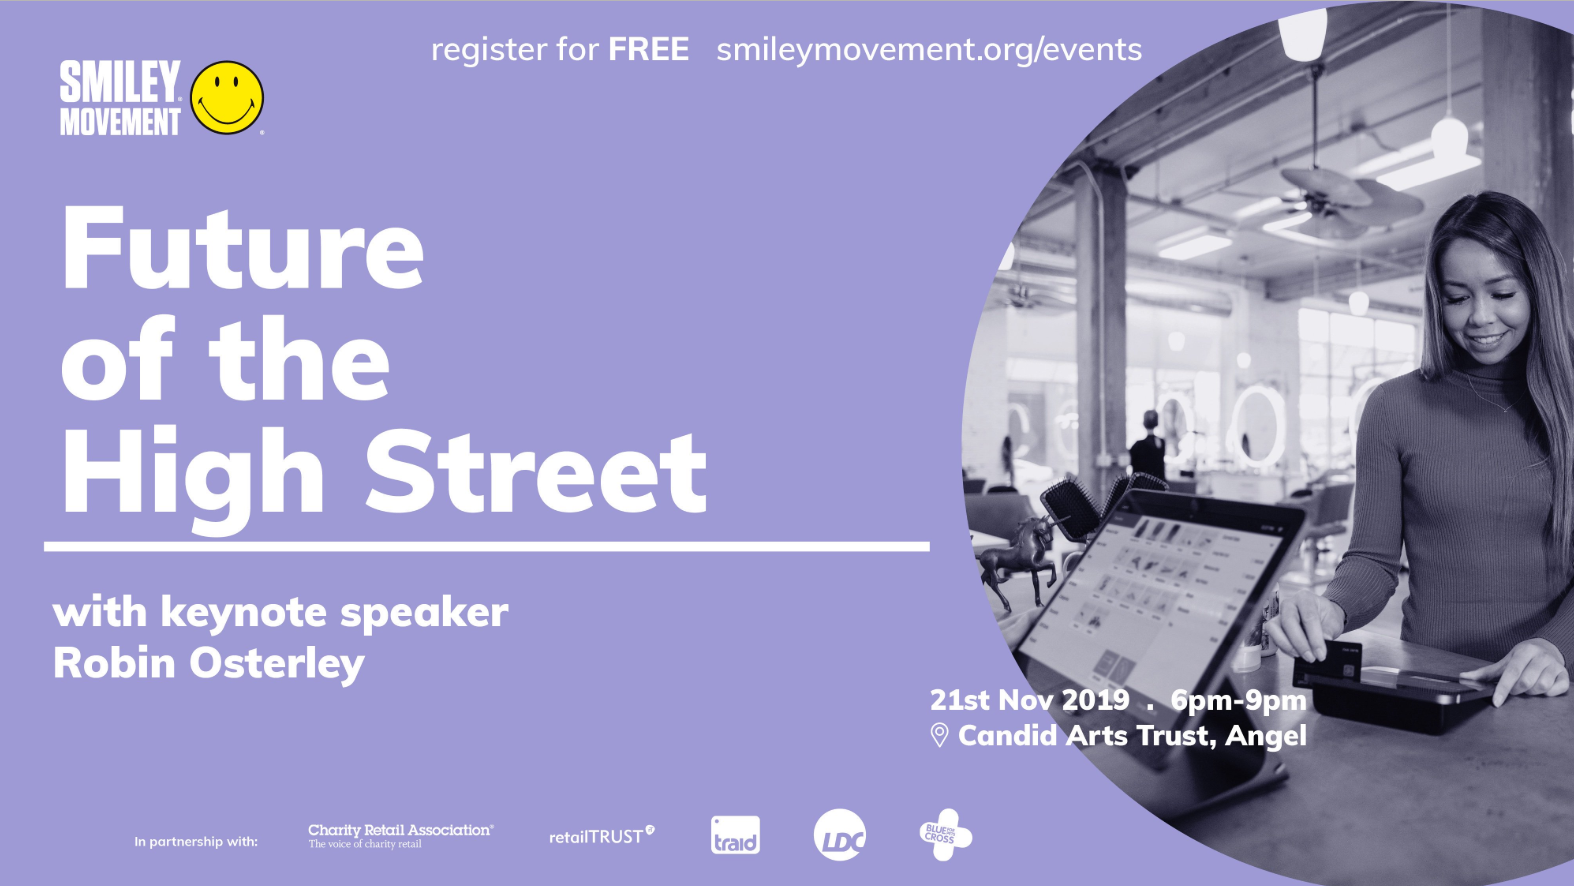 Future of the High Street talk hosted by Smiley Movement